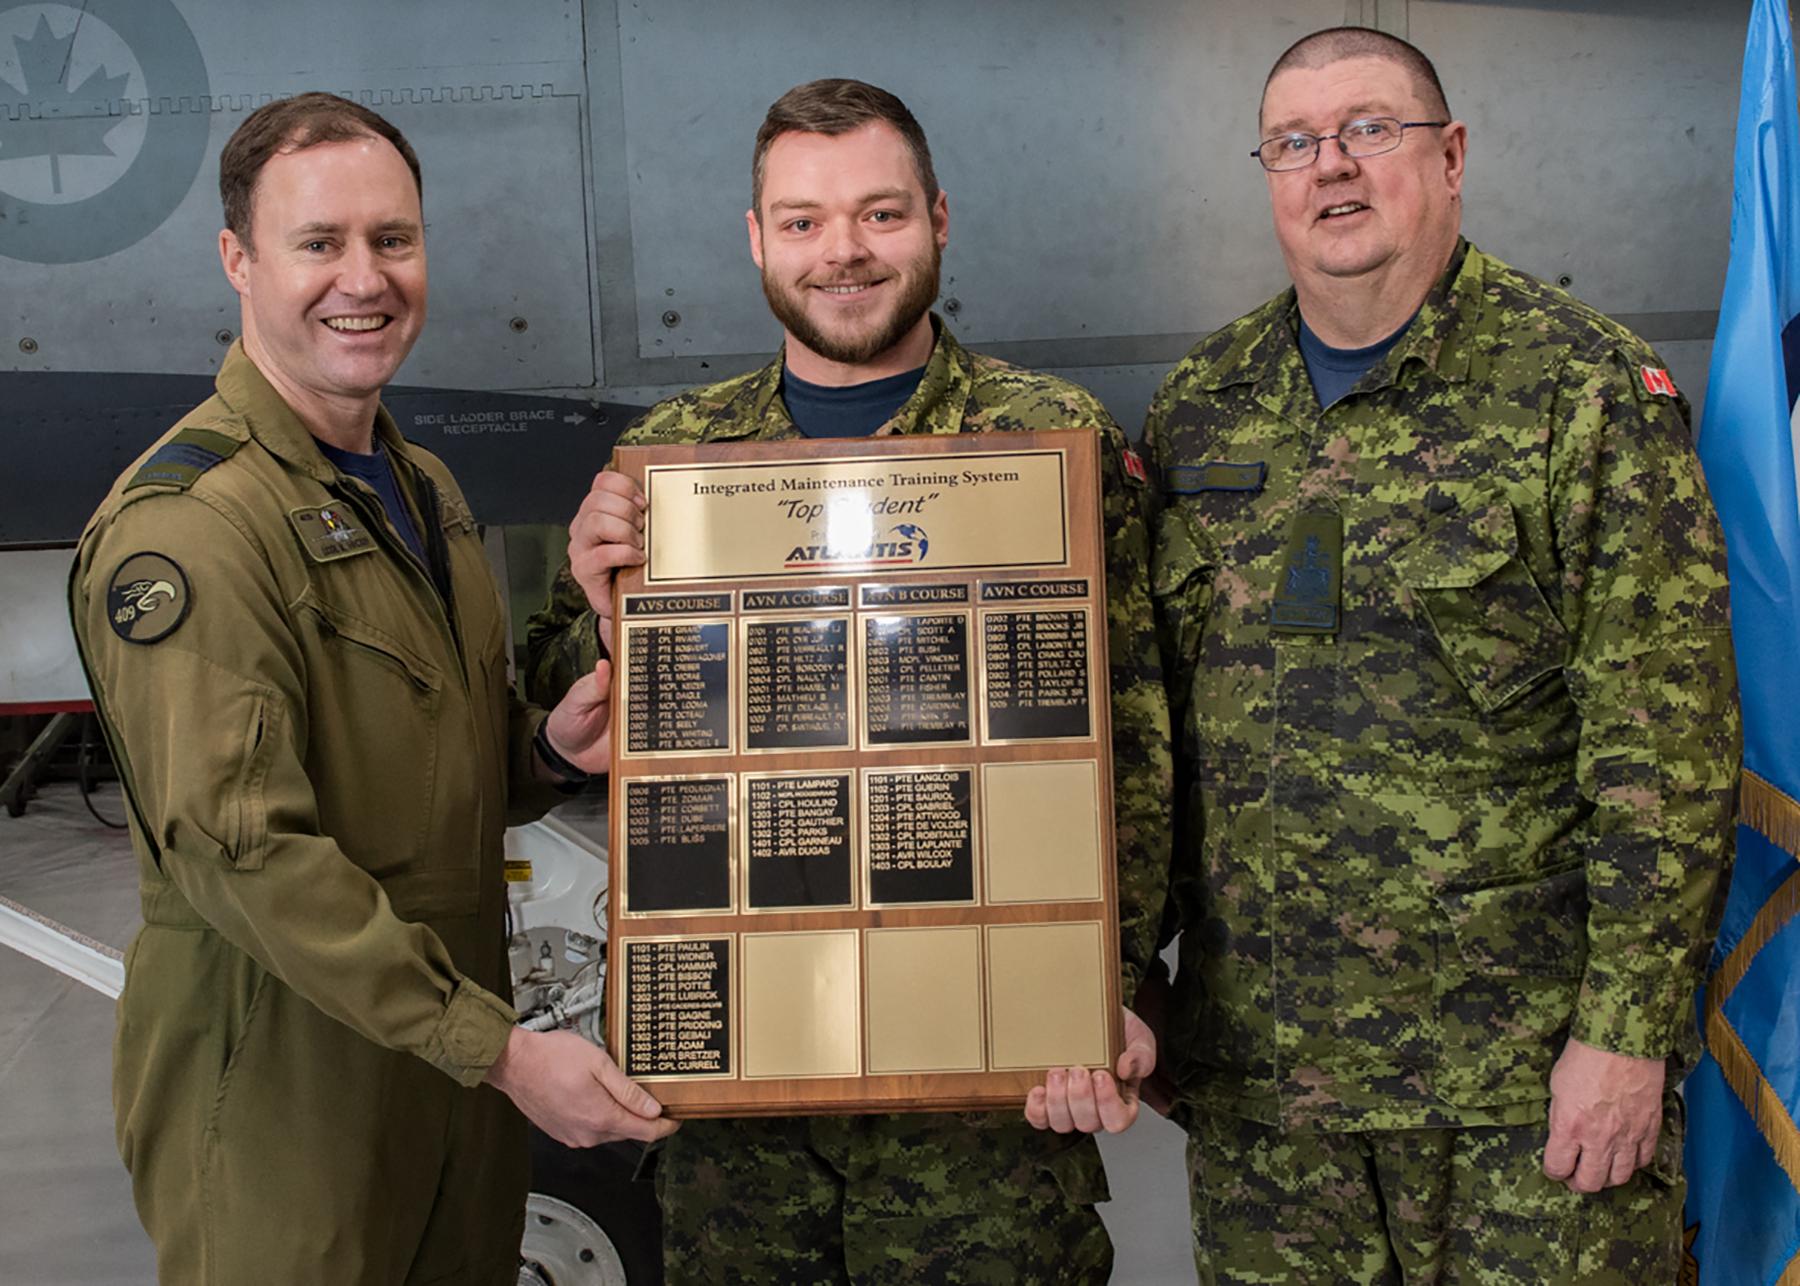 Three men wearing olive green or disruptive pattern uniforms stand in a row; with help from the man on the left, the man in the middle holds a large plaque.